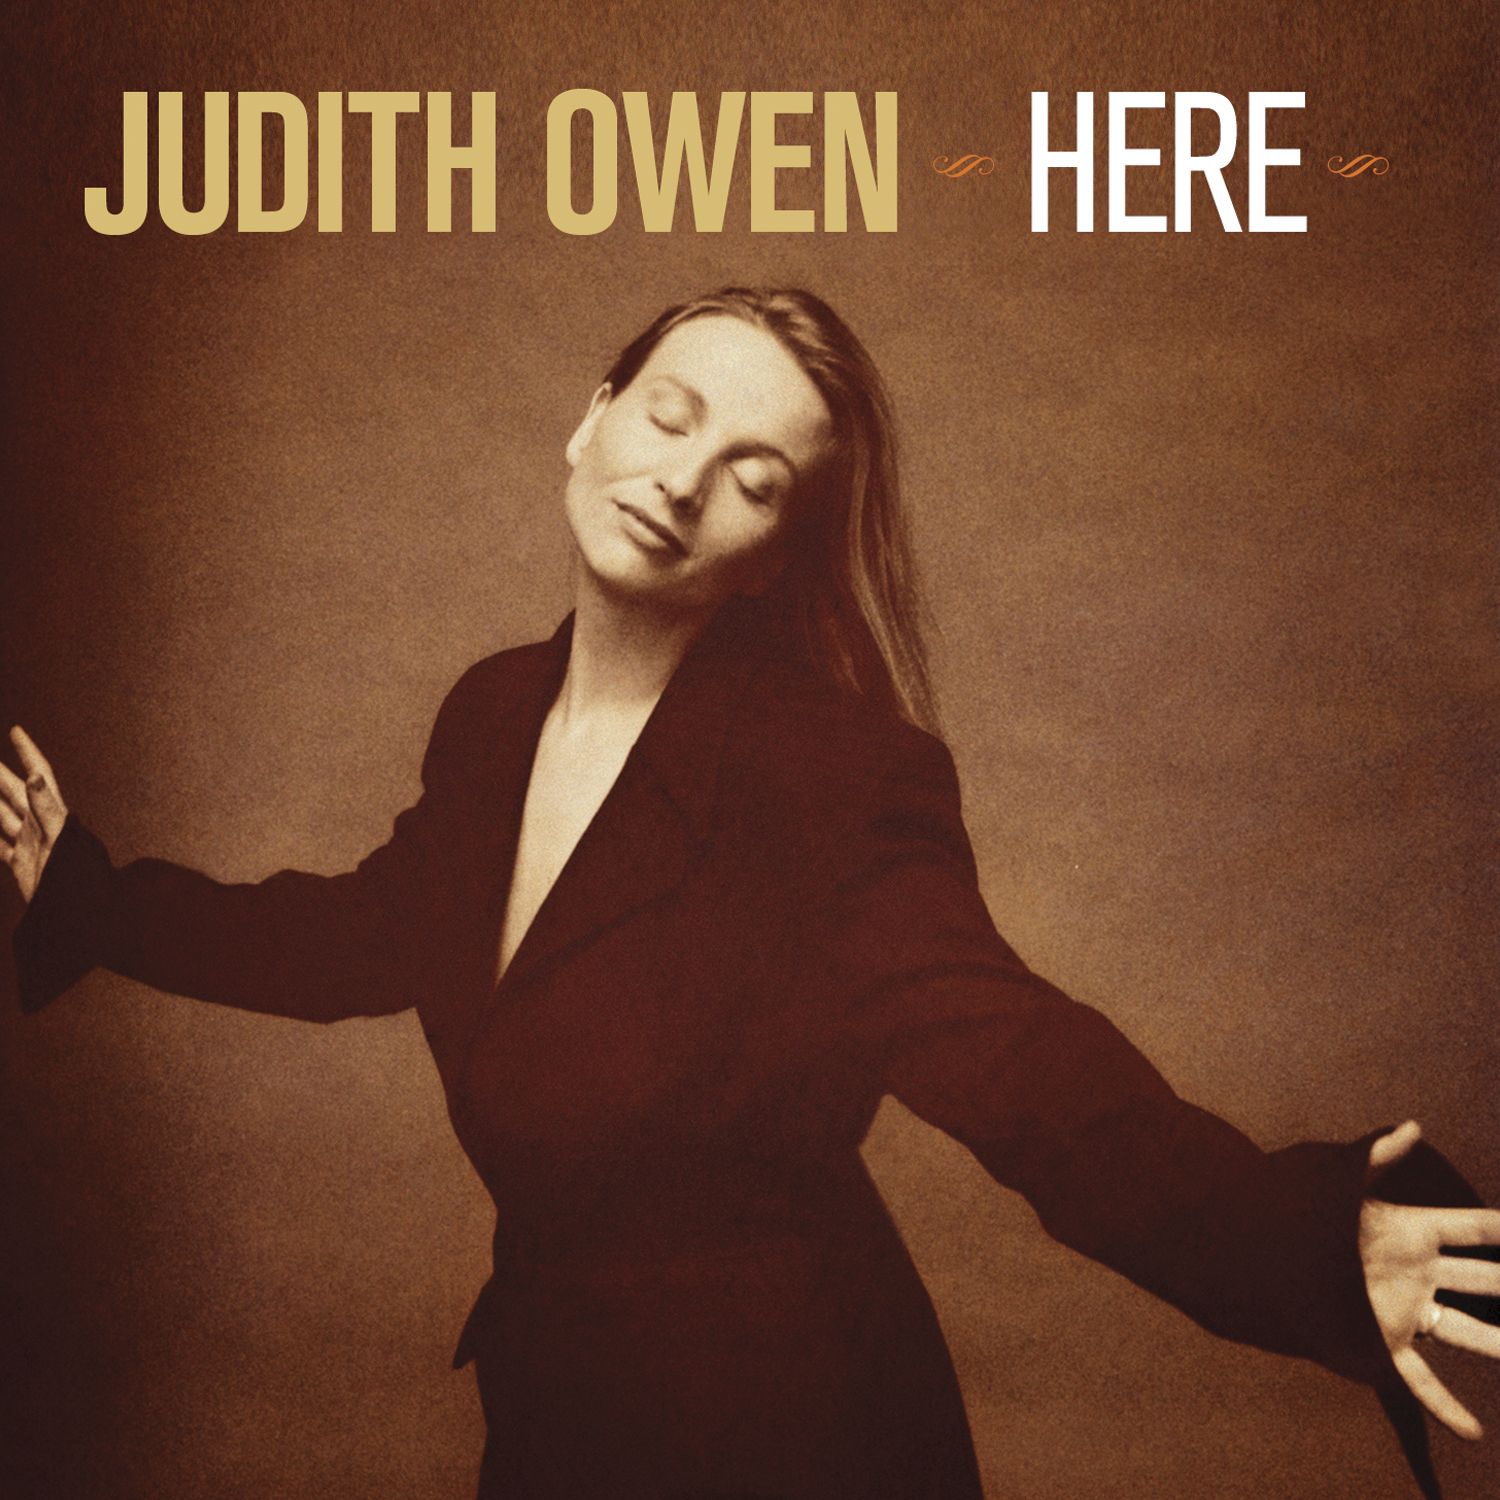 Here (CD) [2006] - Judith Owen